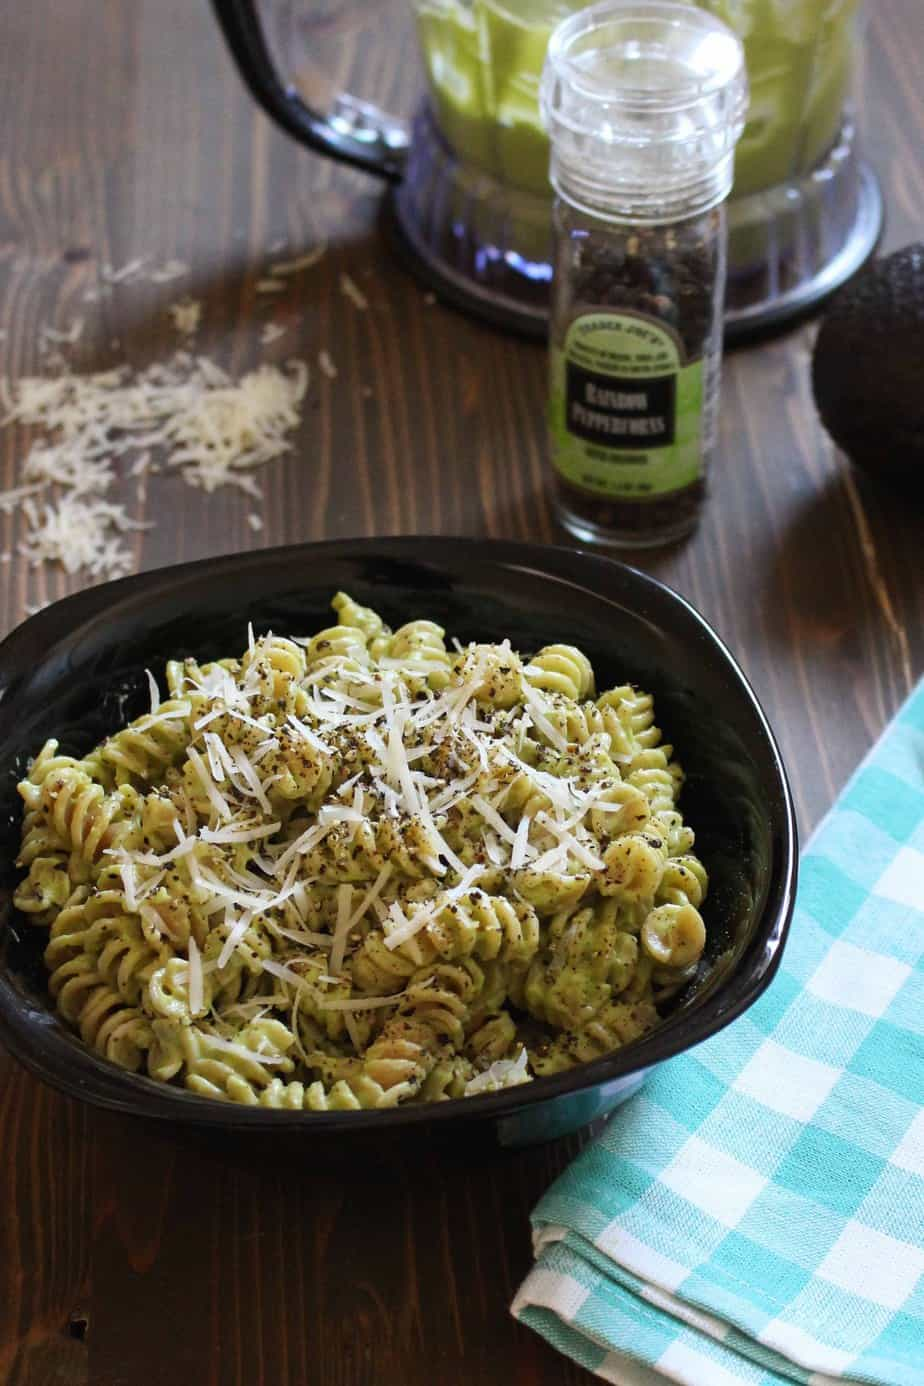 Avocado Alfredo Sauce for Pasta or Zoodles | Frugal Nutrition